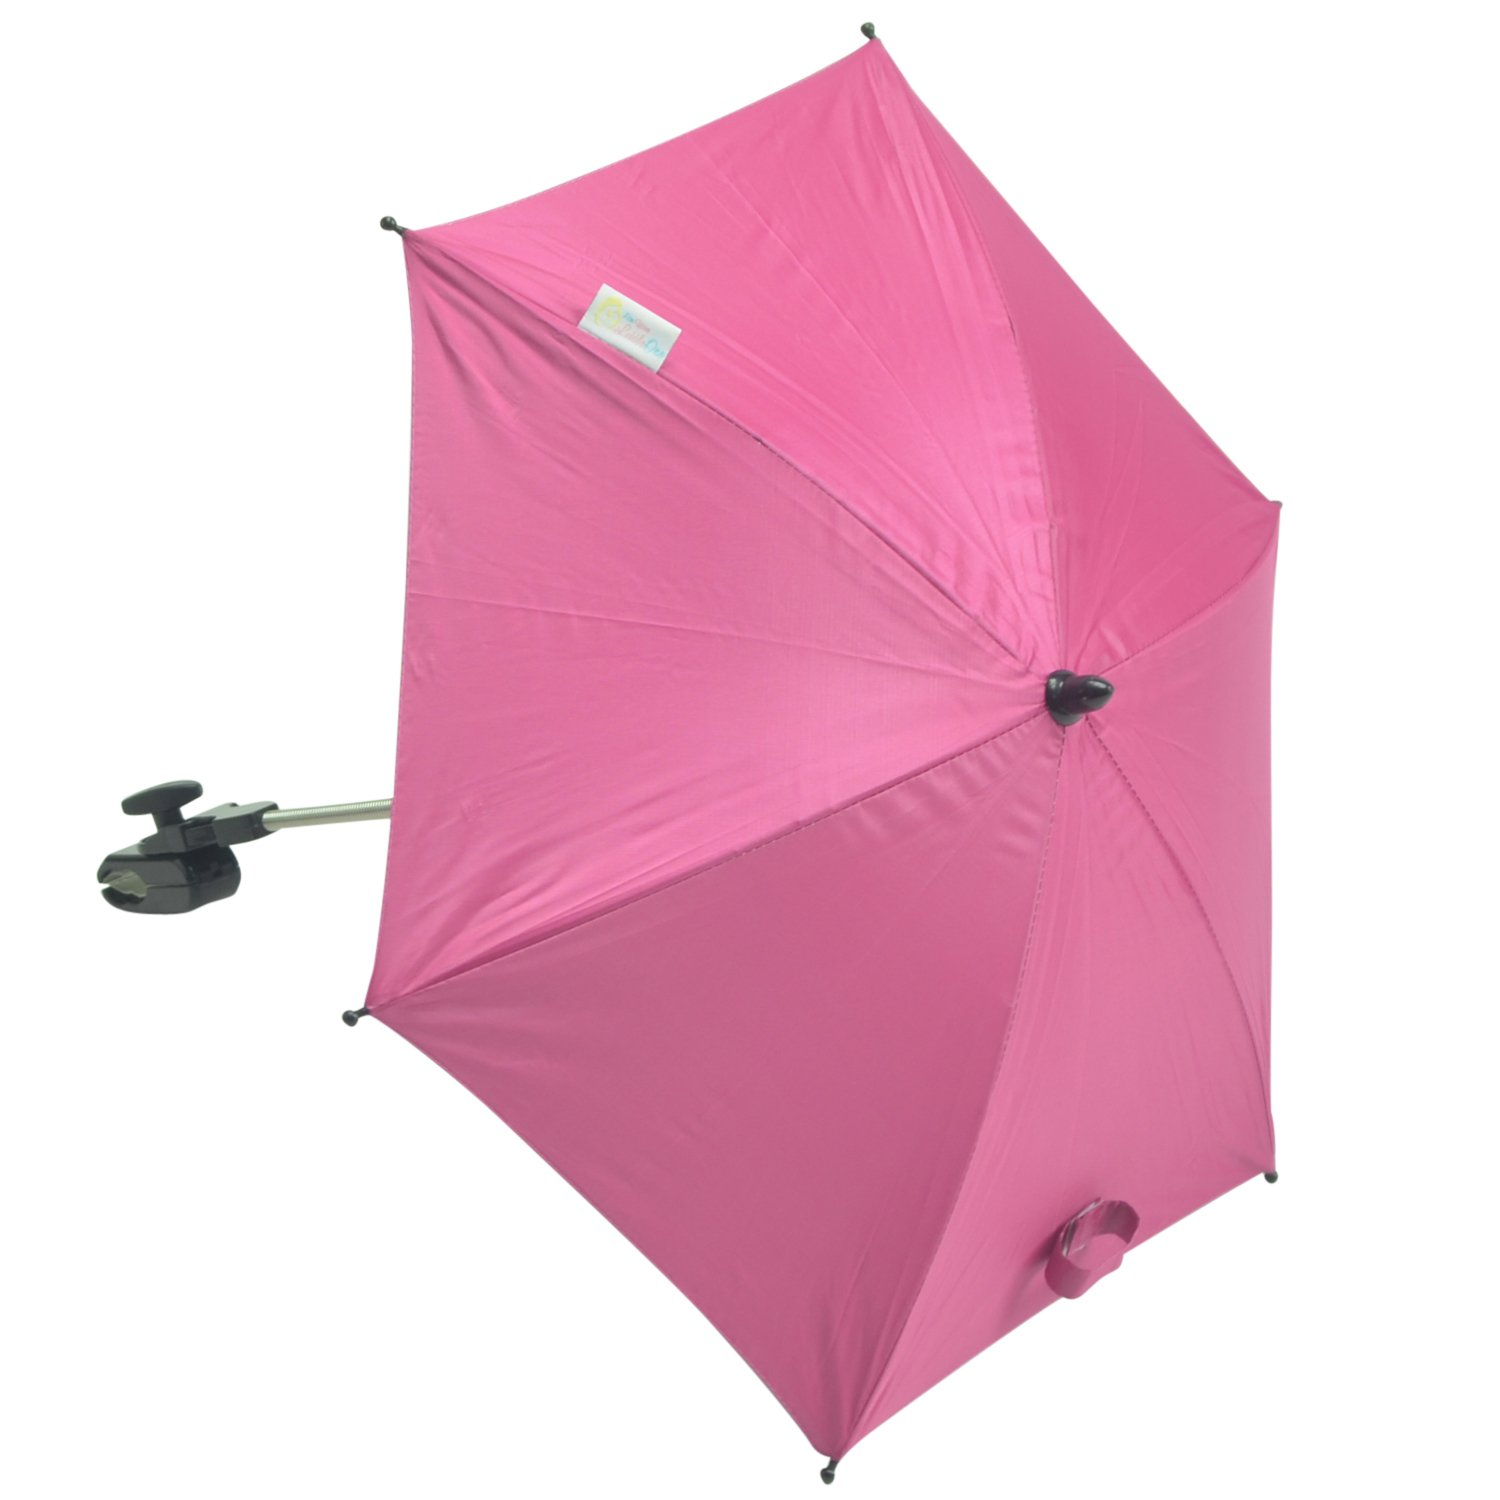 For-Your-little-One Parasol Compatible with iCandy Strawberry Hot Pink